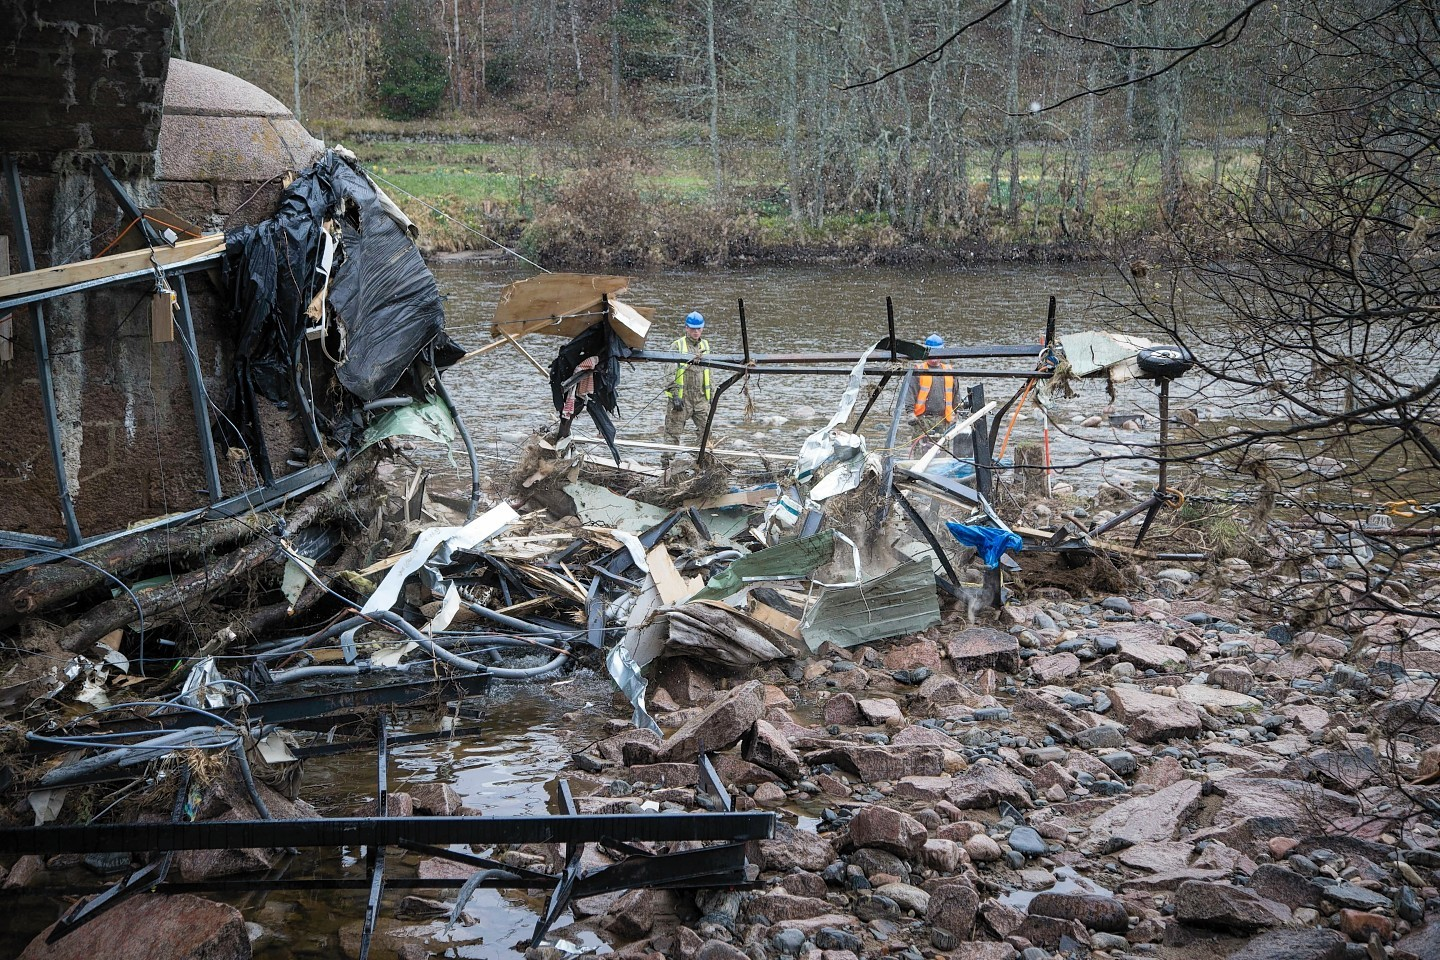 Troops got to work removing debris from the arches of Ballater's Royal Bridge